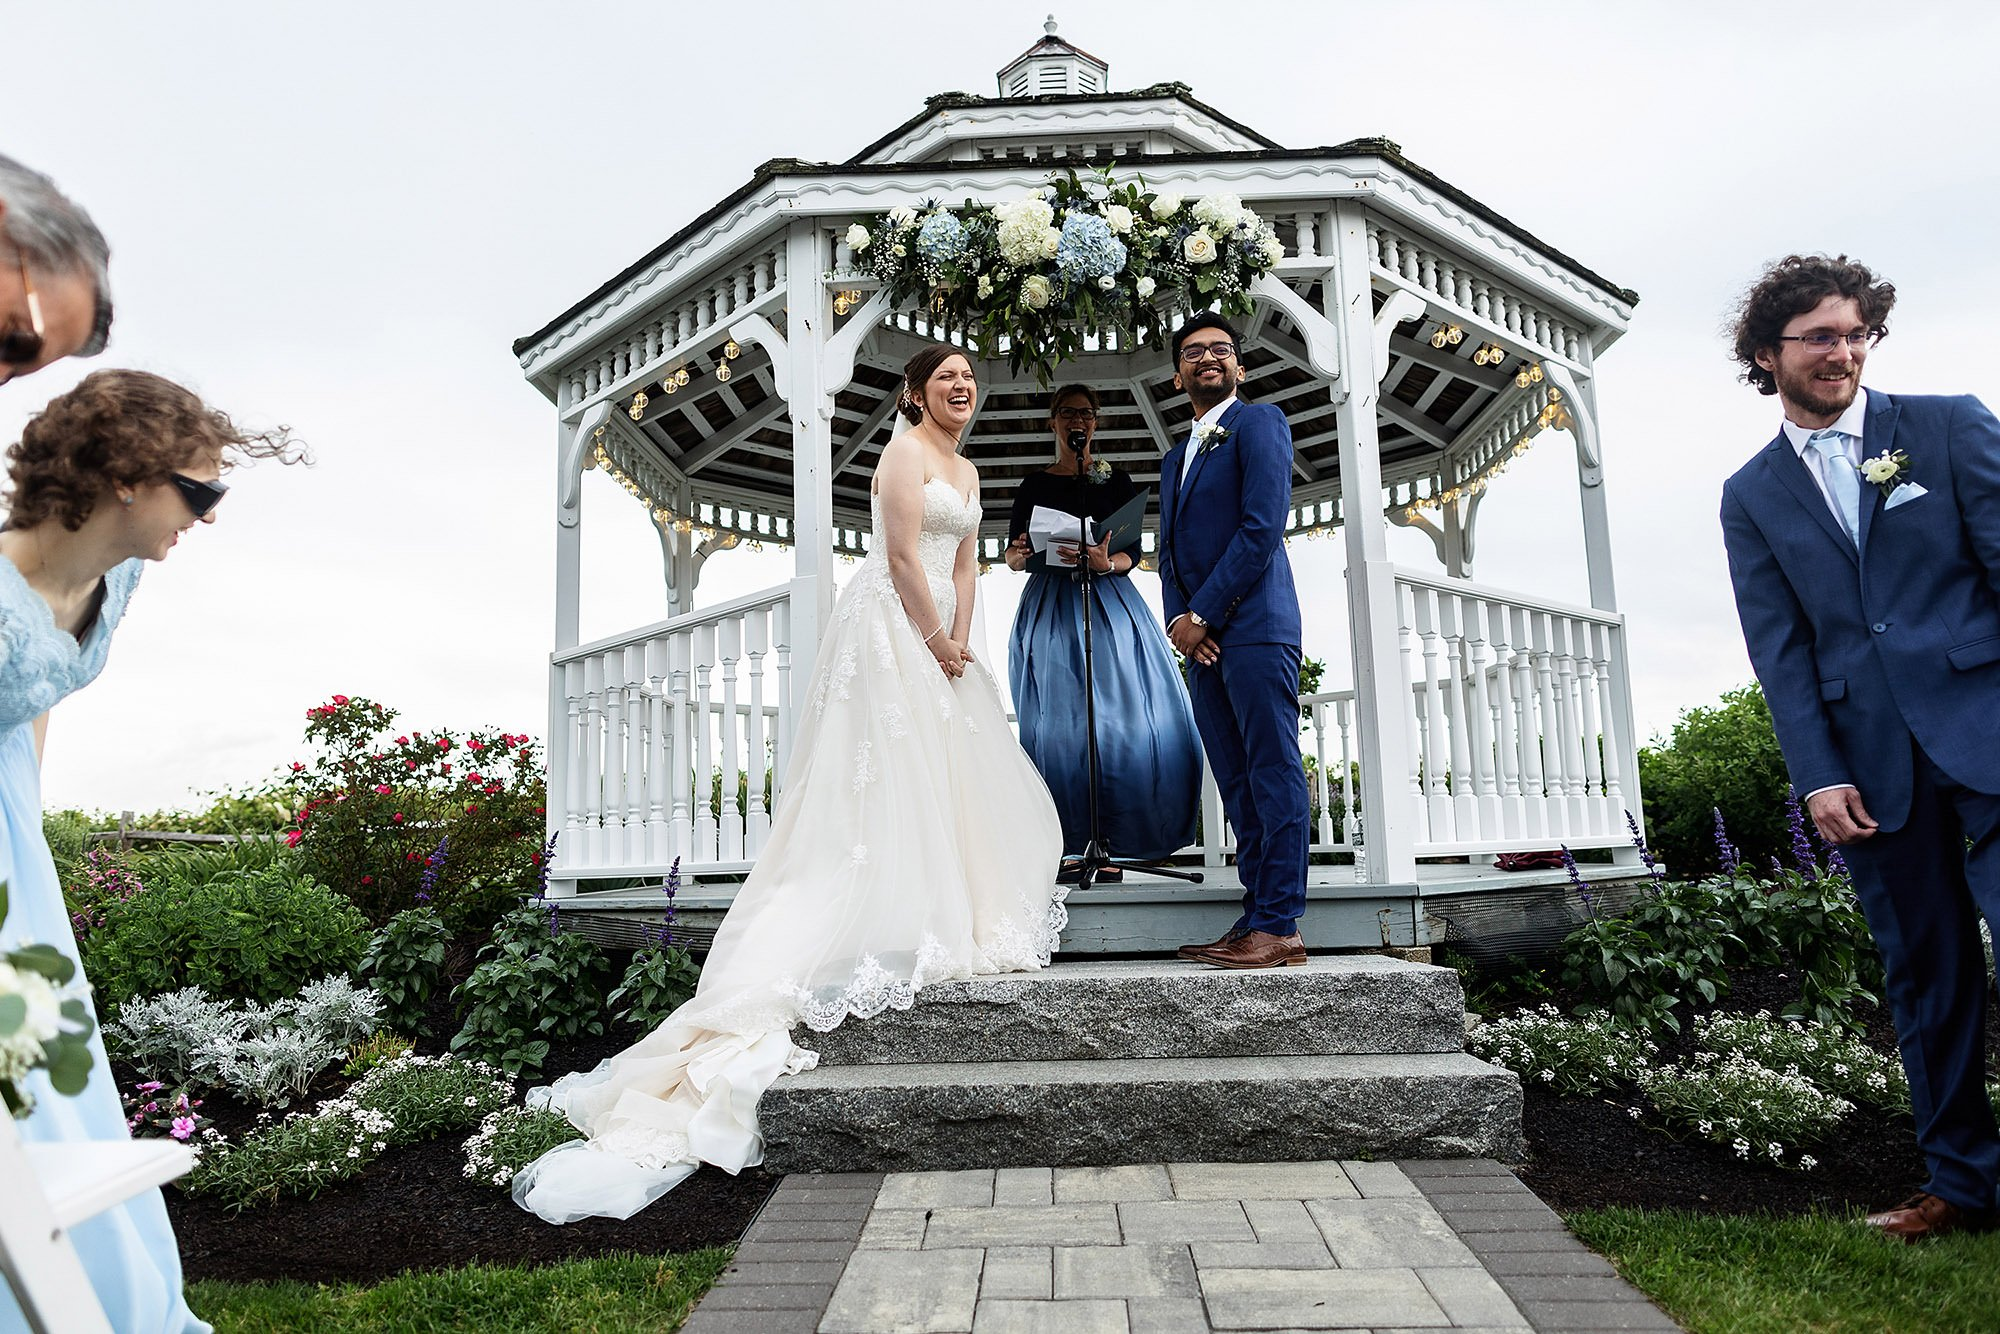 White Cliffs Country Club Wedding  I  The couple laugh during their wedding ceremony on Cape Cod.